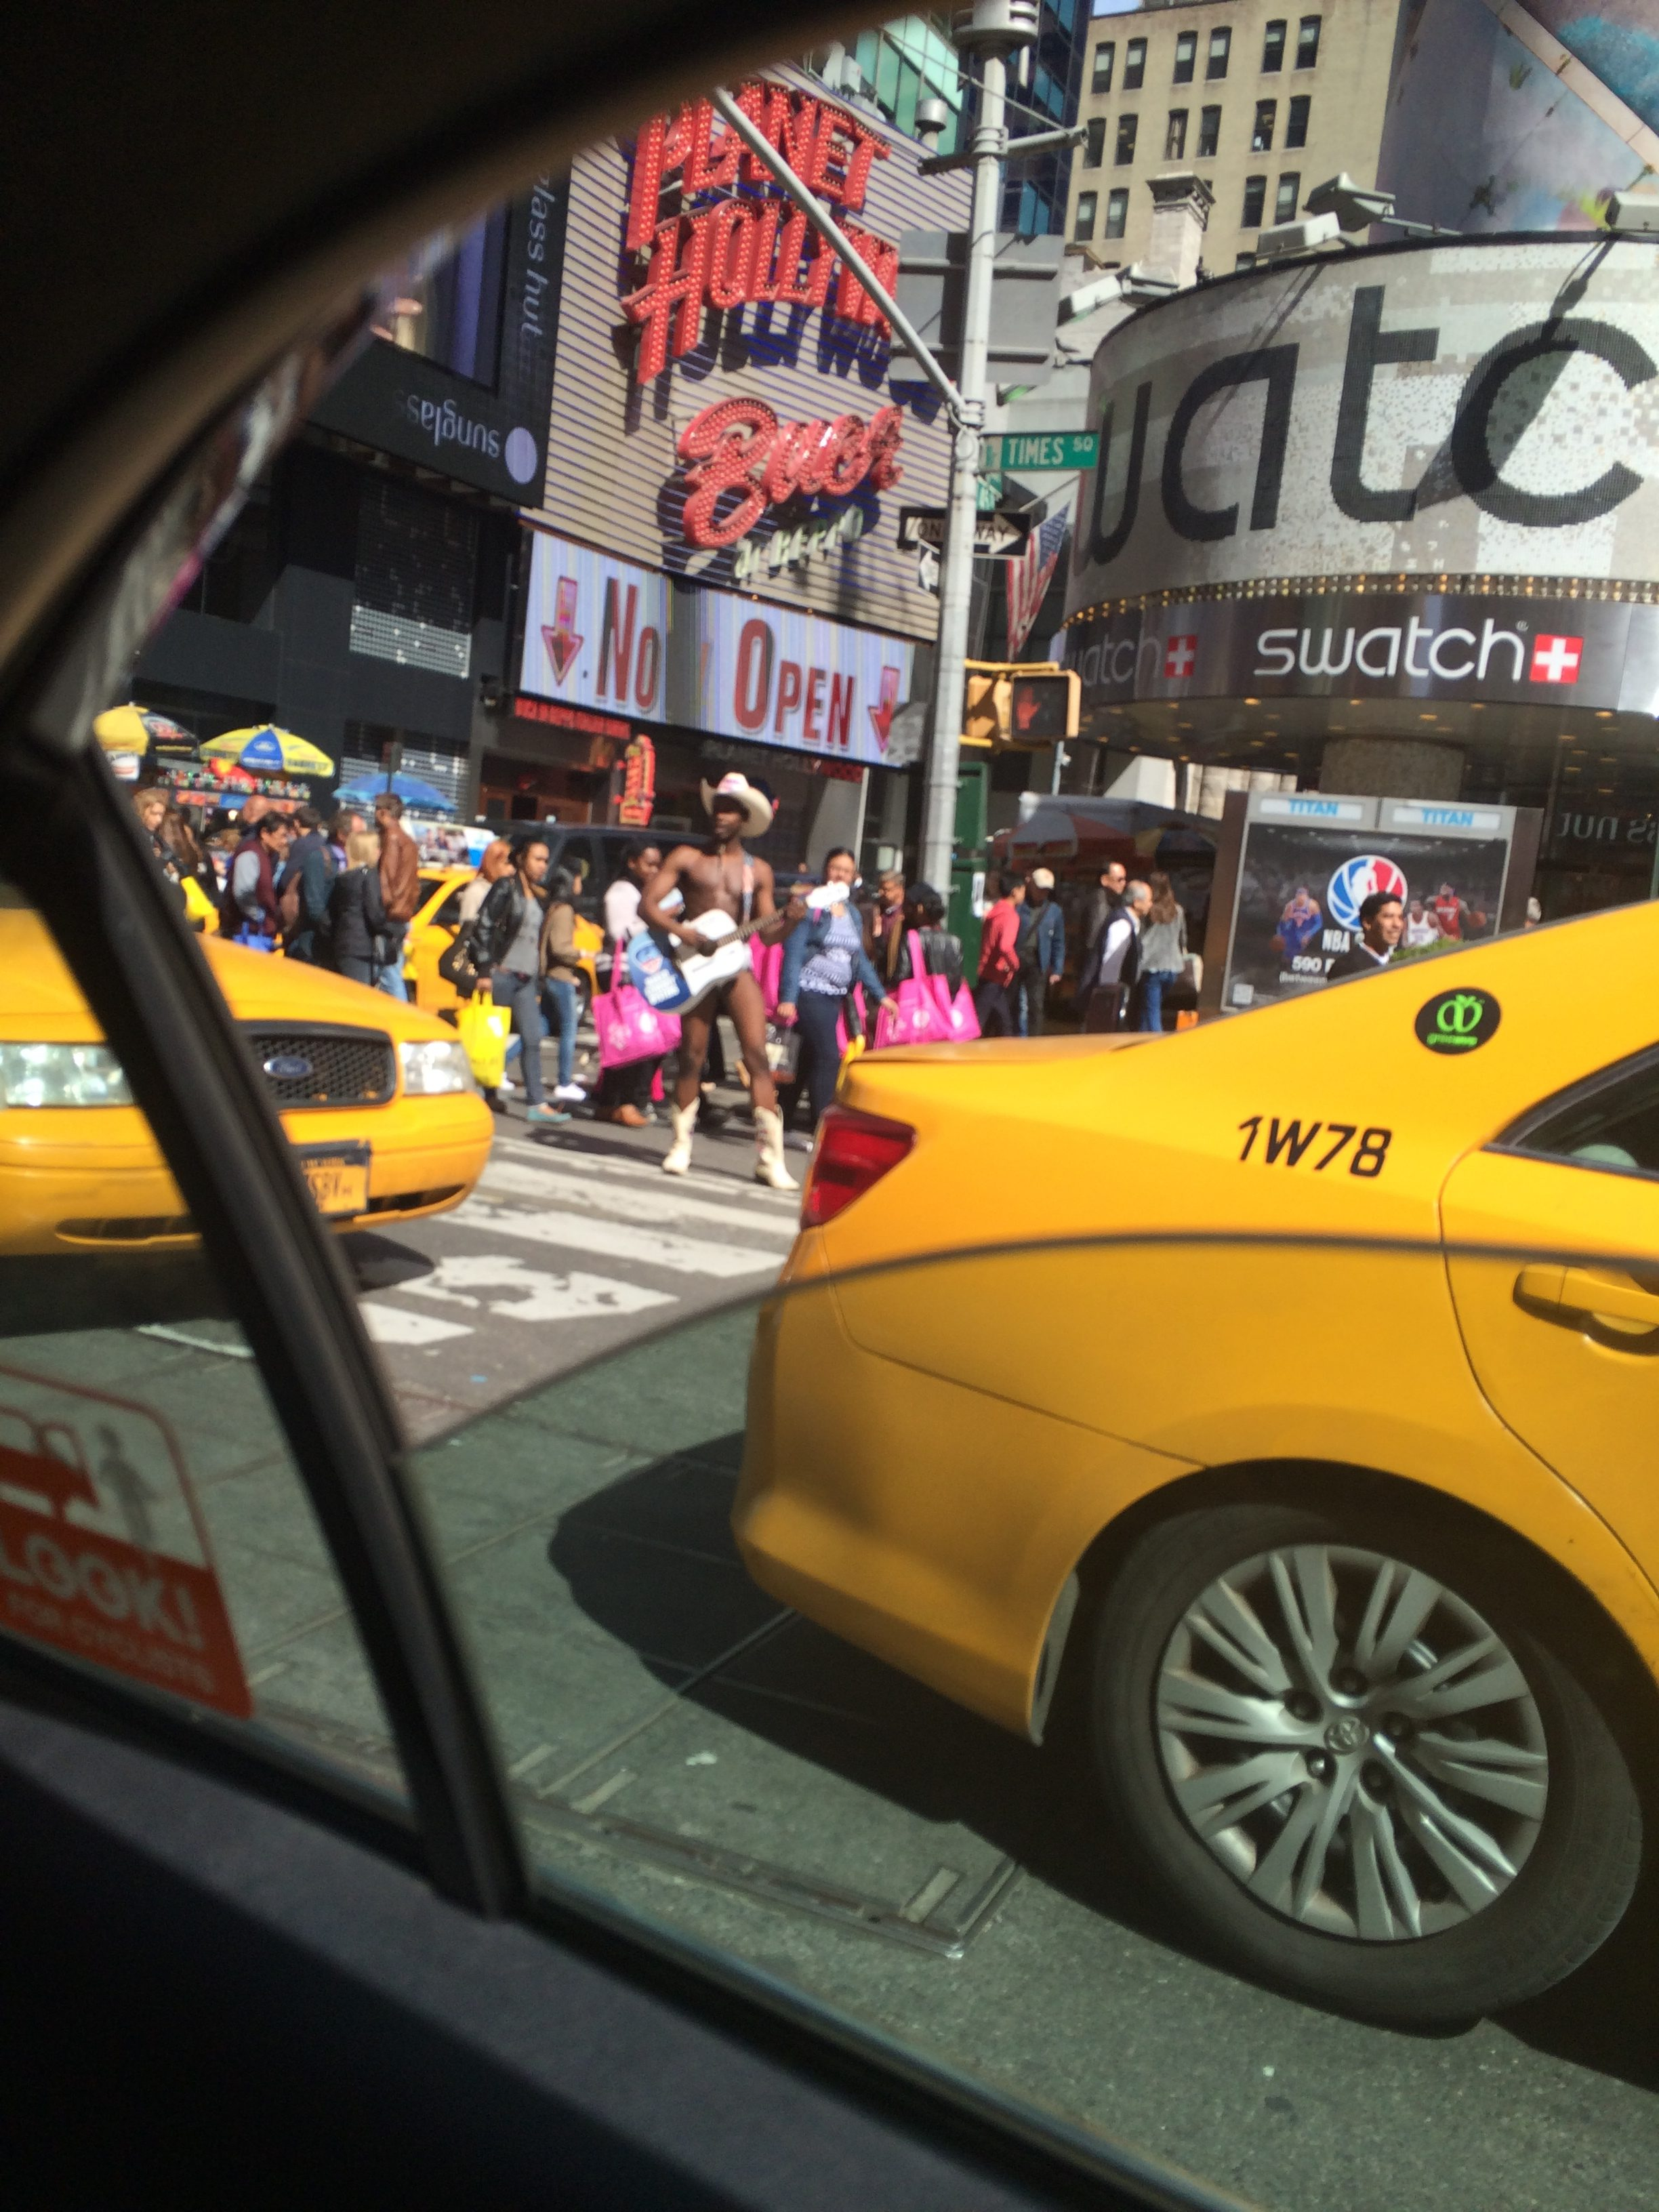 Nyc taxi View